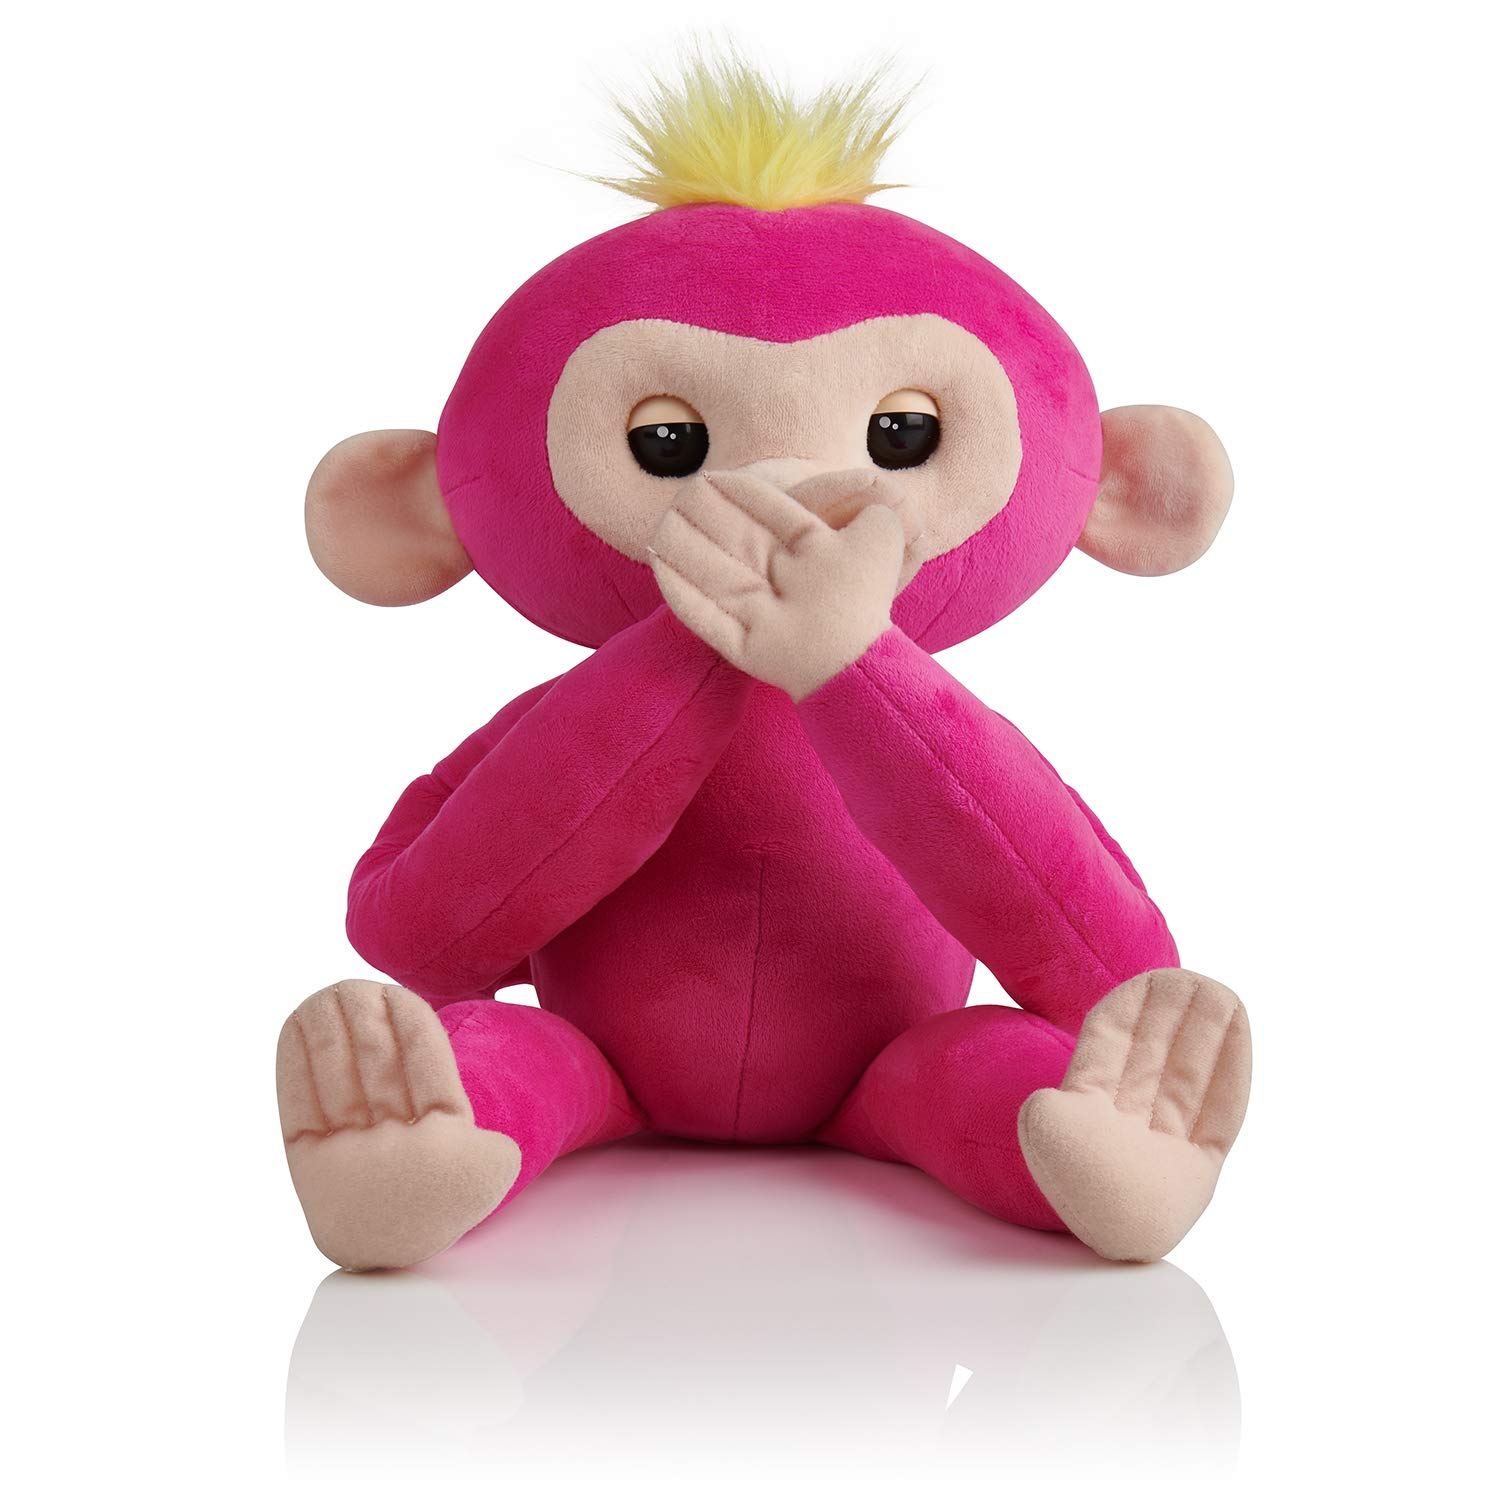 Fingerlings HUGS Bella Pink Advanced Interactive Plush Baby Monkey Pet by WowWee